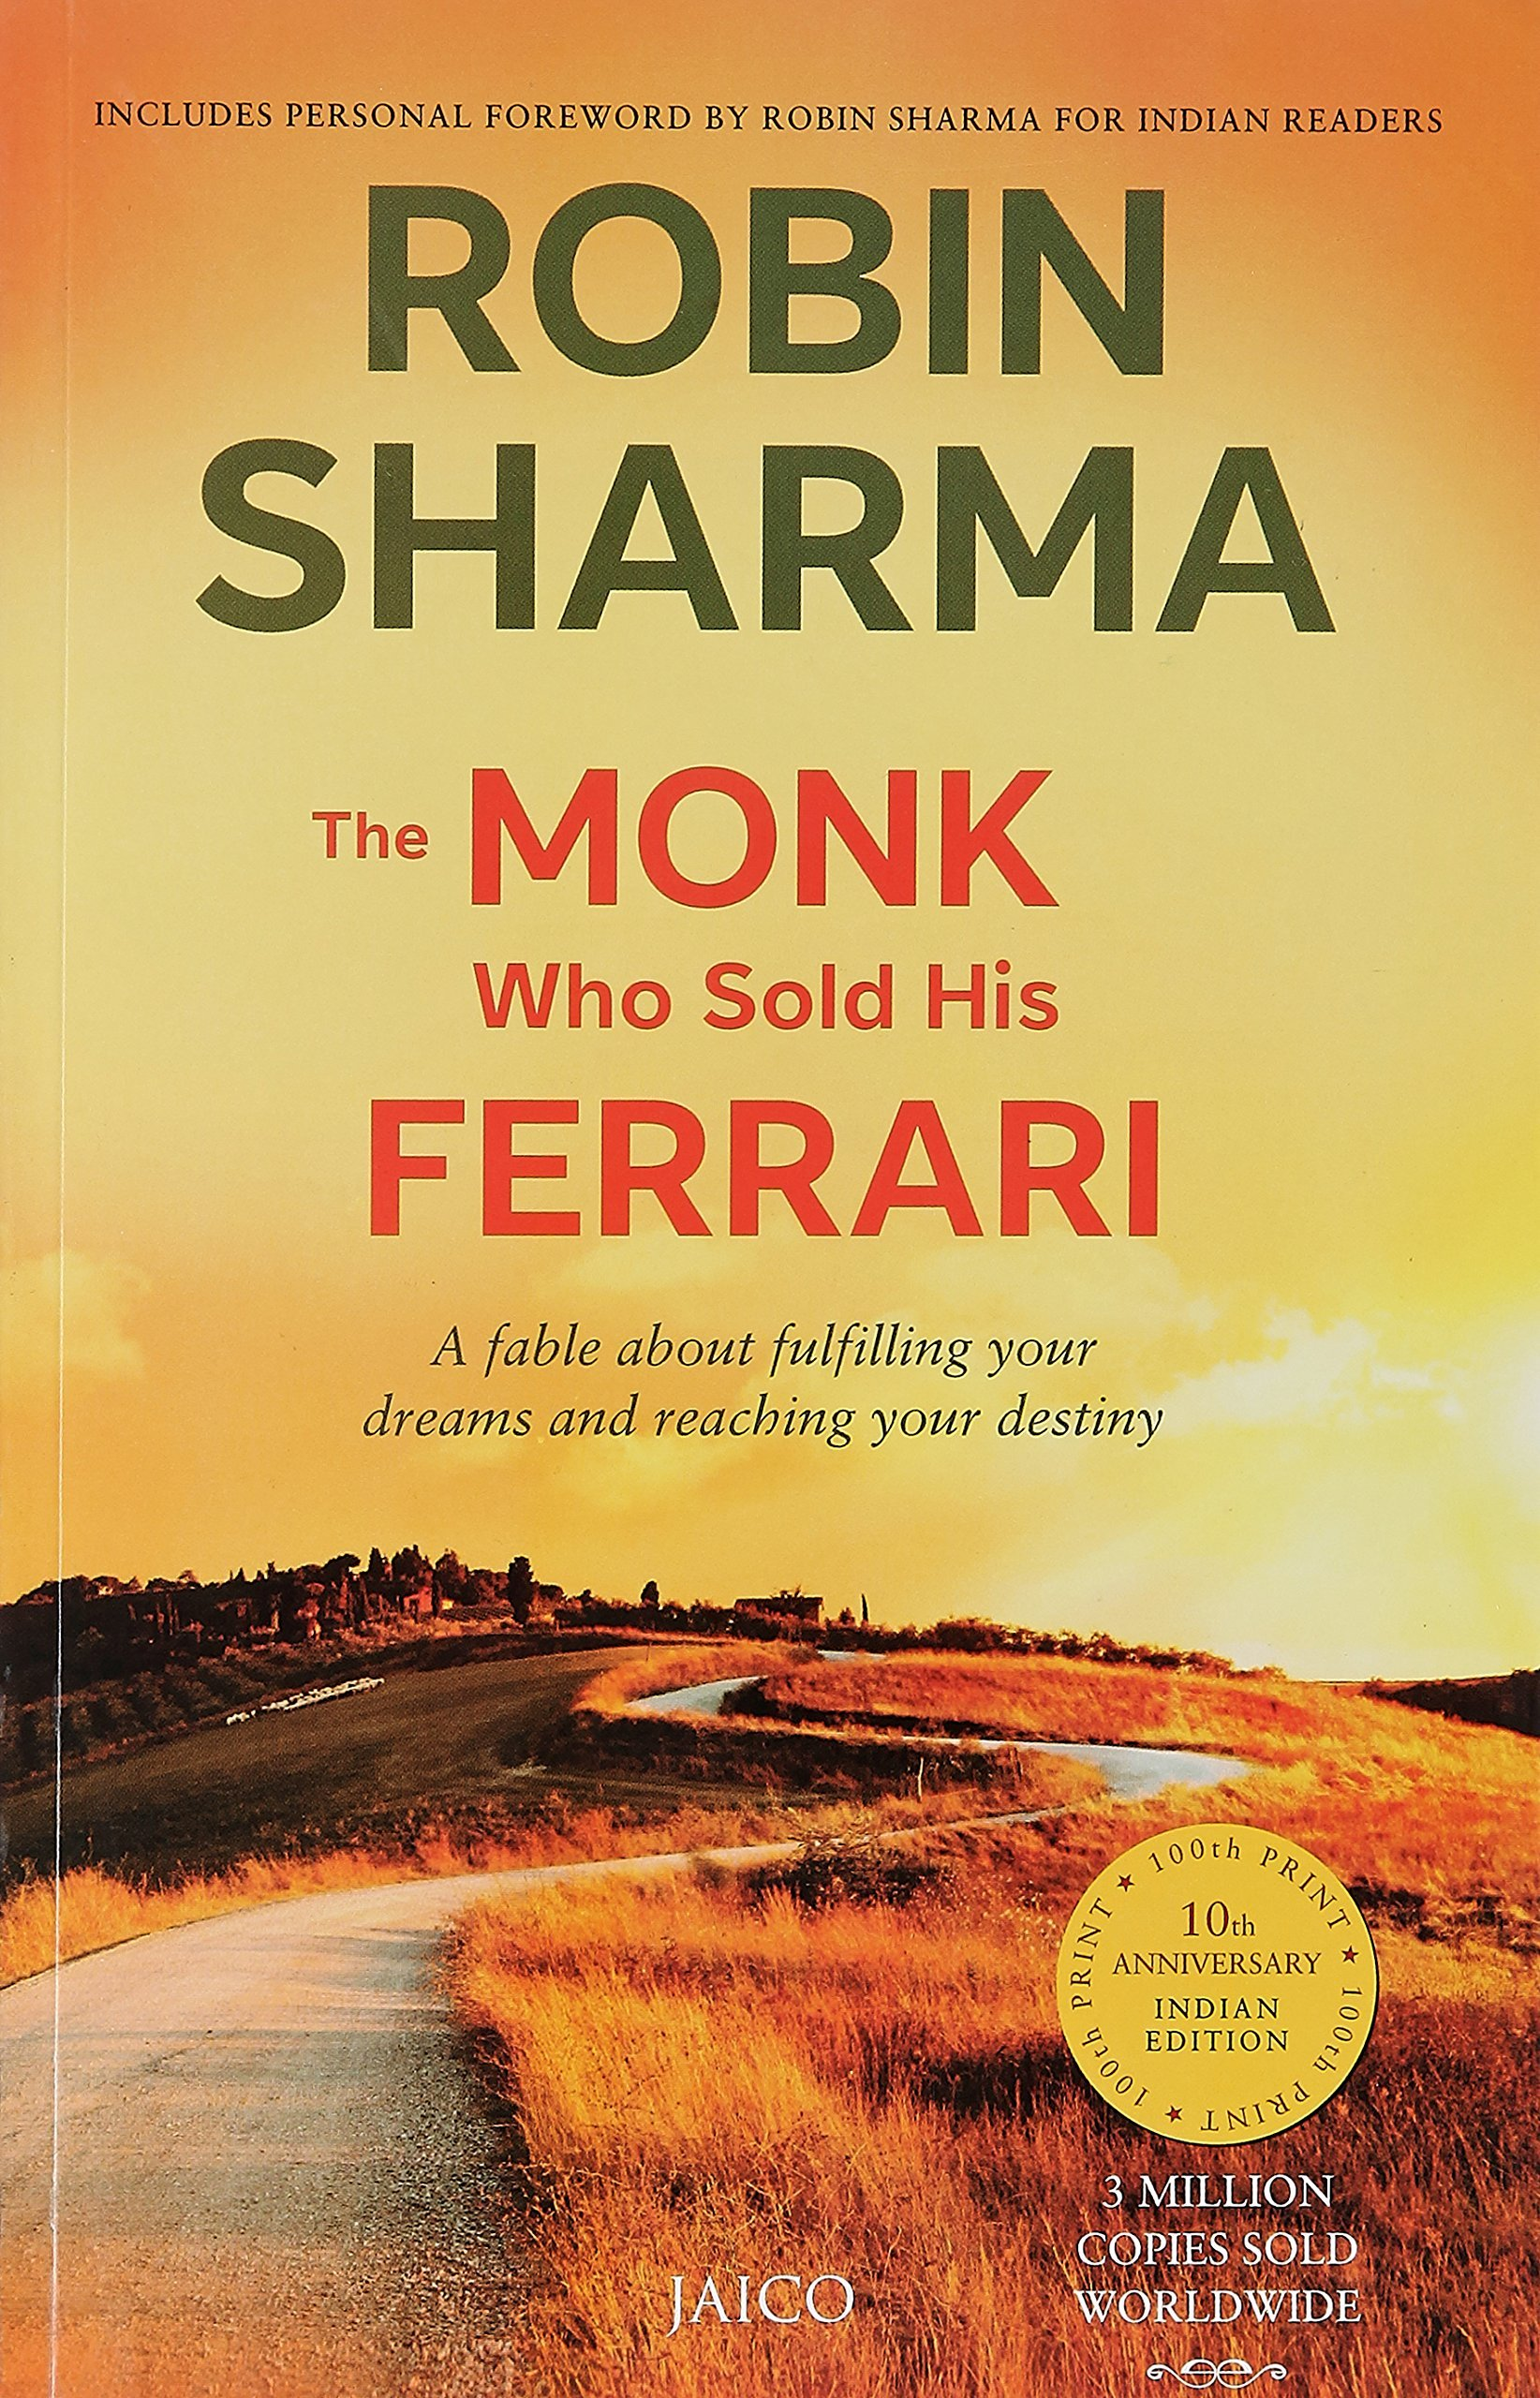 the-monk-who-sold-his-ferrari-a-fable-about-fulfilling-your-dreams-and-reaching-your-destiny-paperback-2003